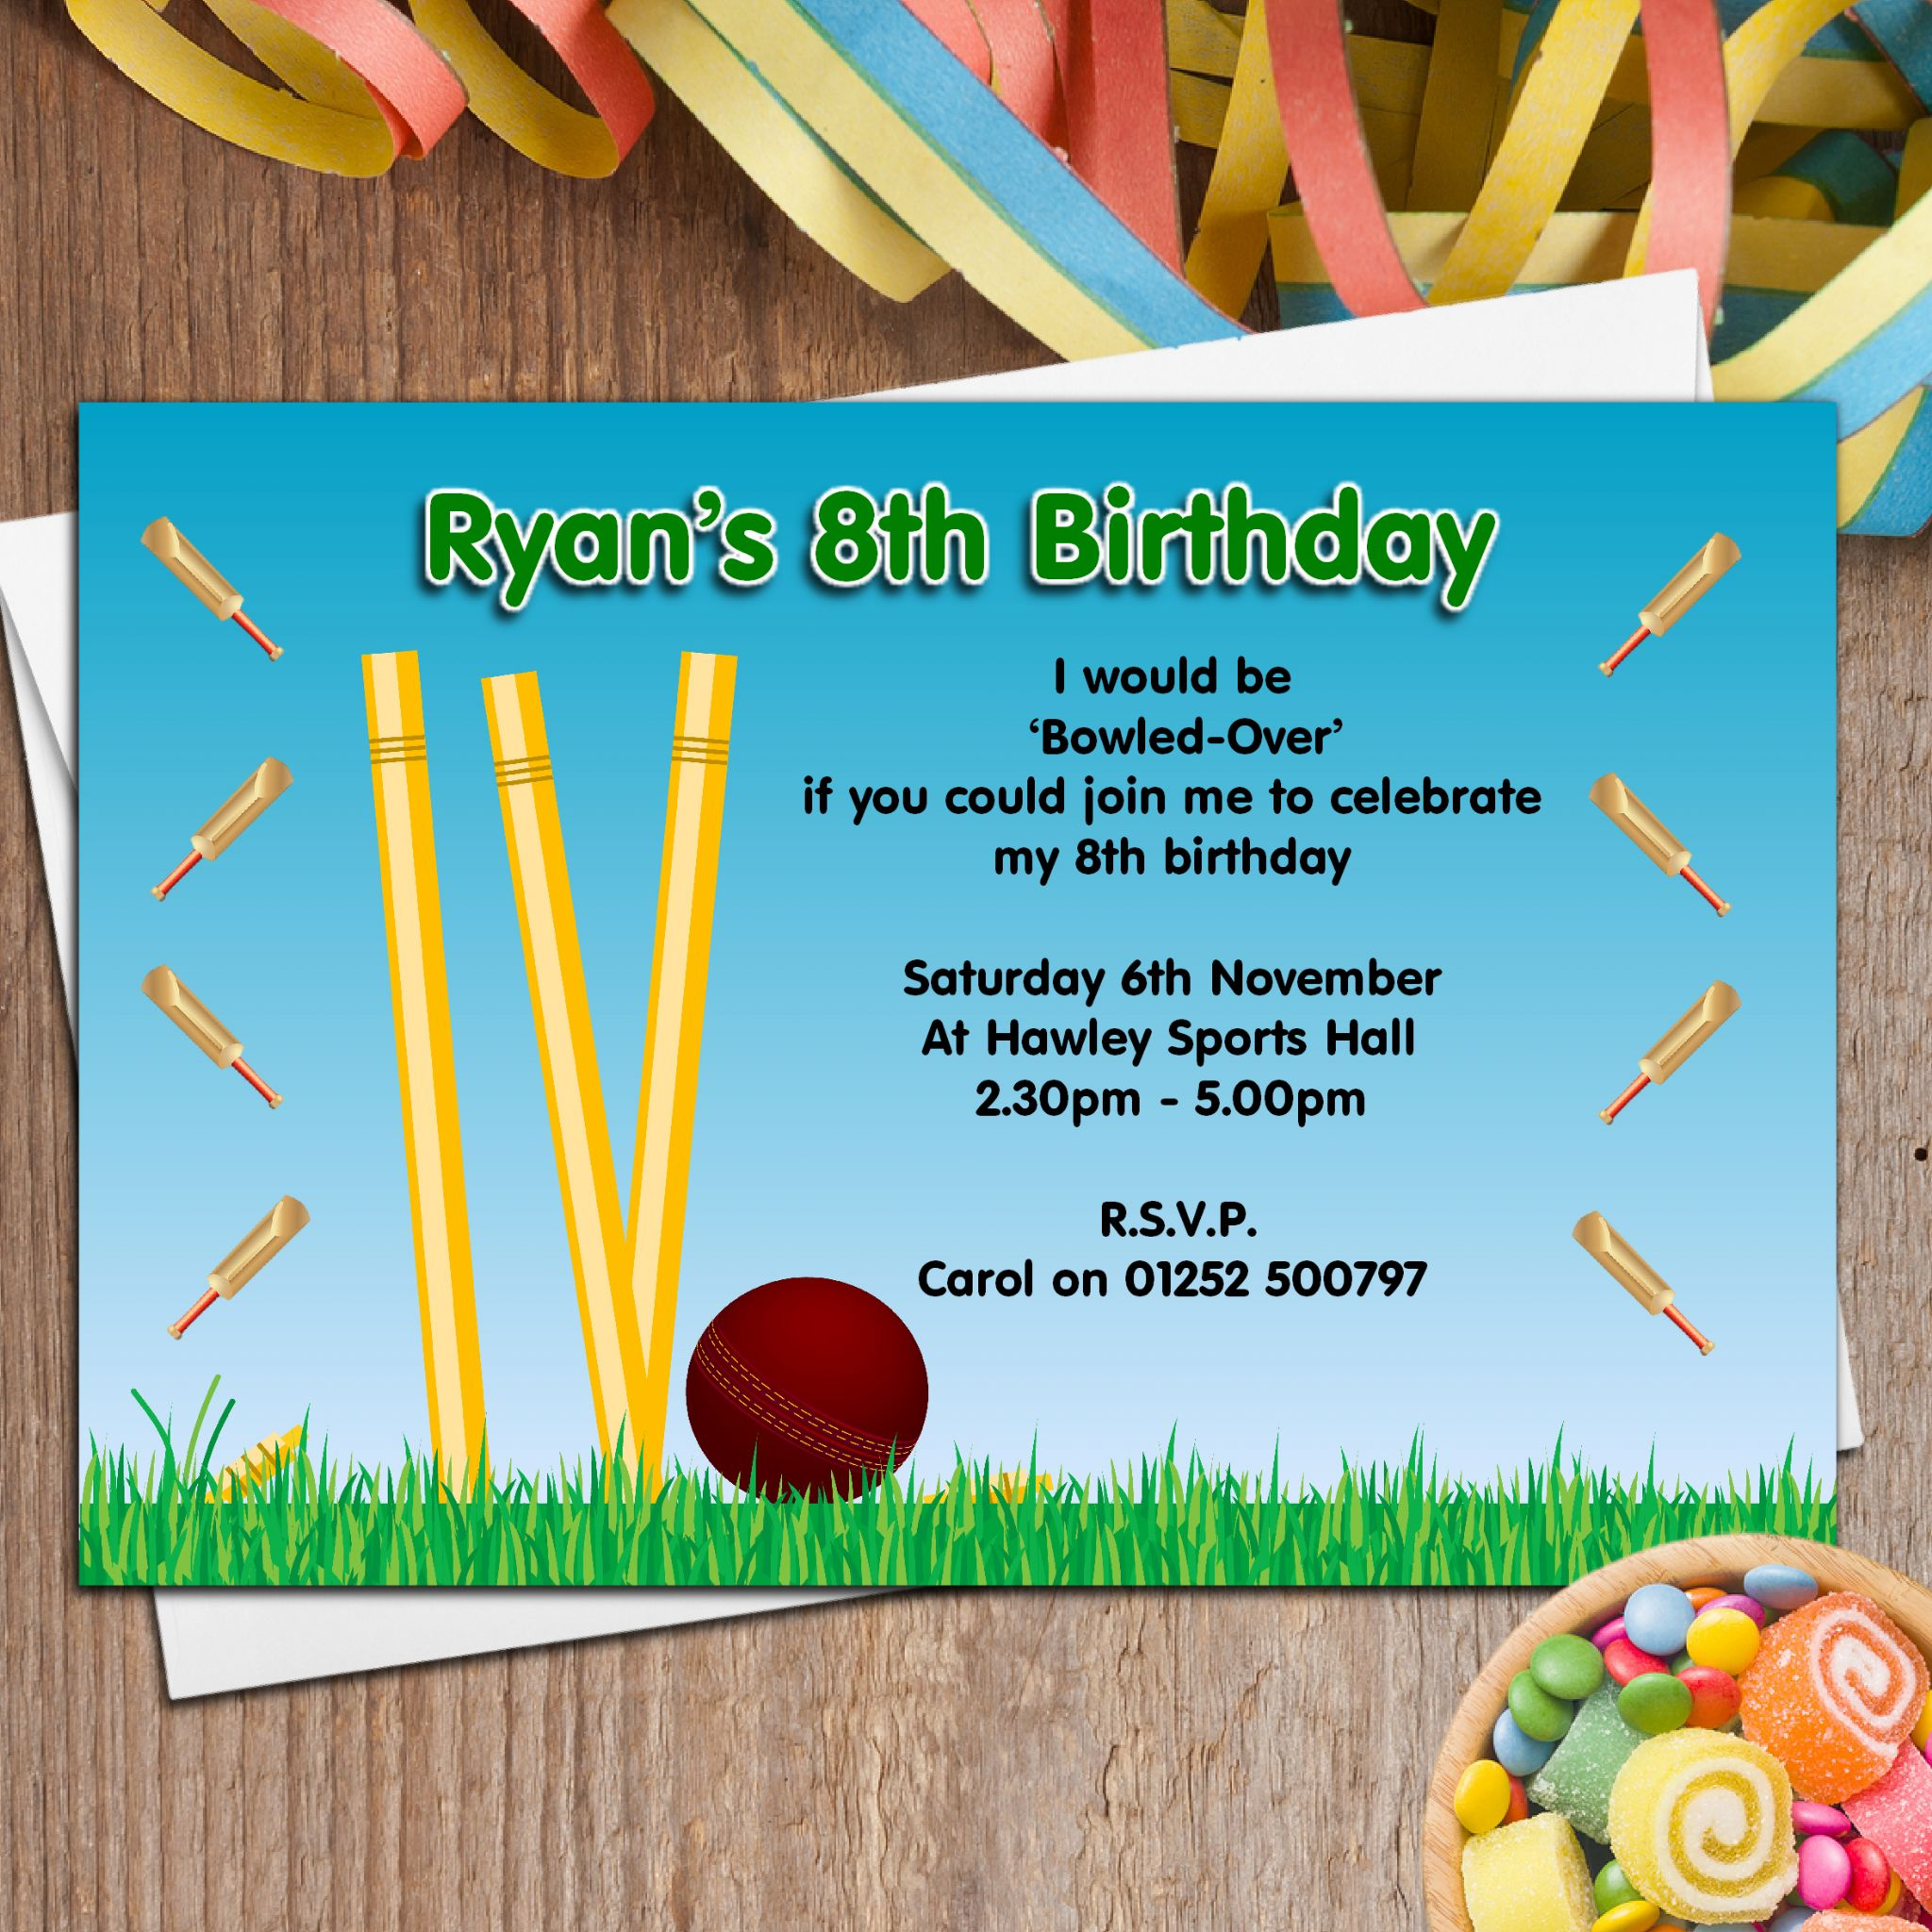 10 years birthday invitation cards ; 10-personalised-cricket-birthday-party-invitations-n46-1667-p